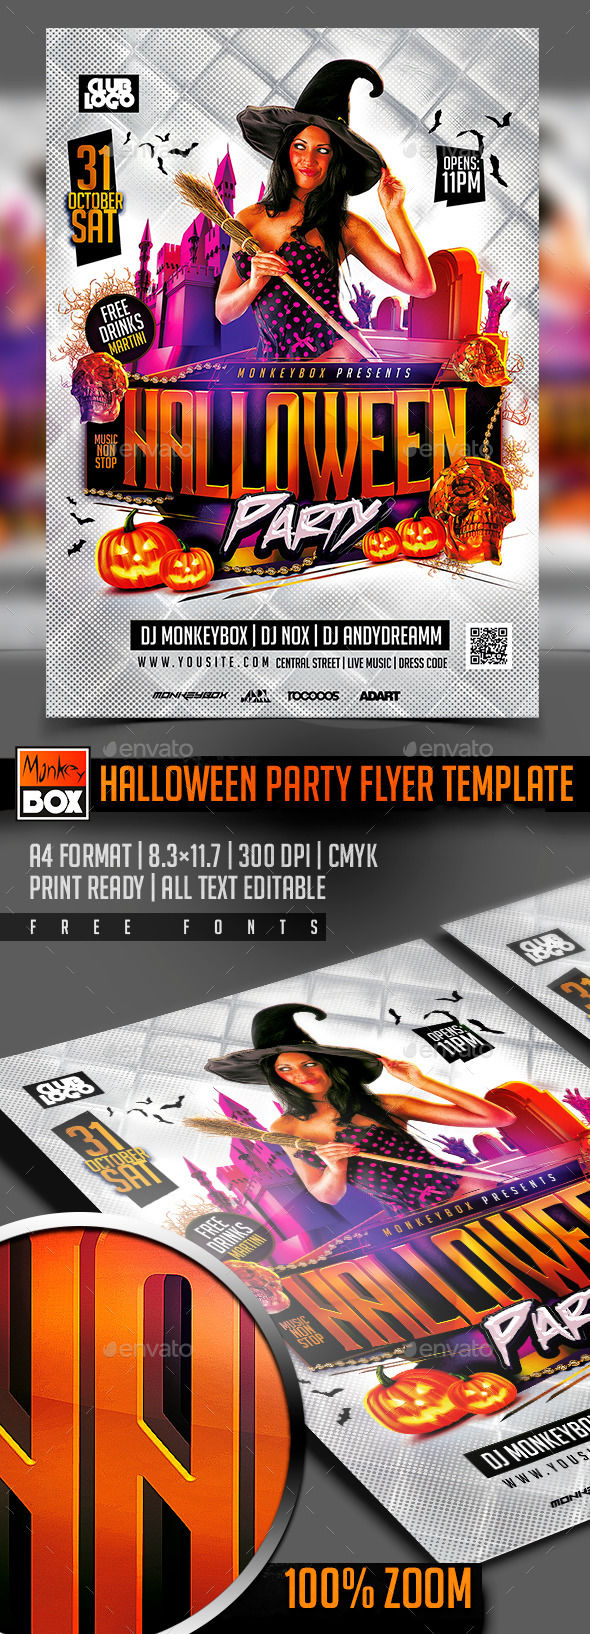 Halloween Party Flyer Template by MonkeyBOX (Halloween party flyer)